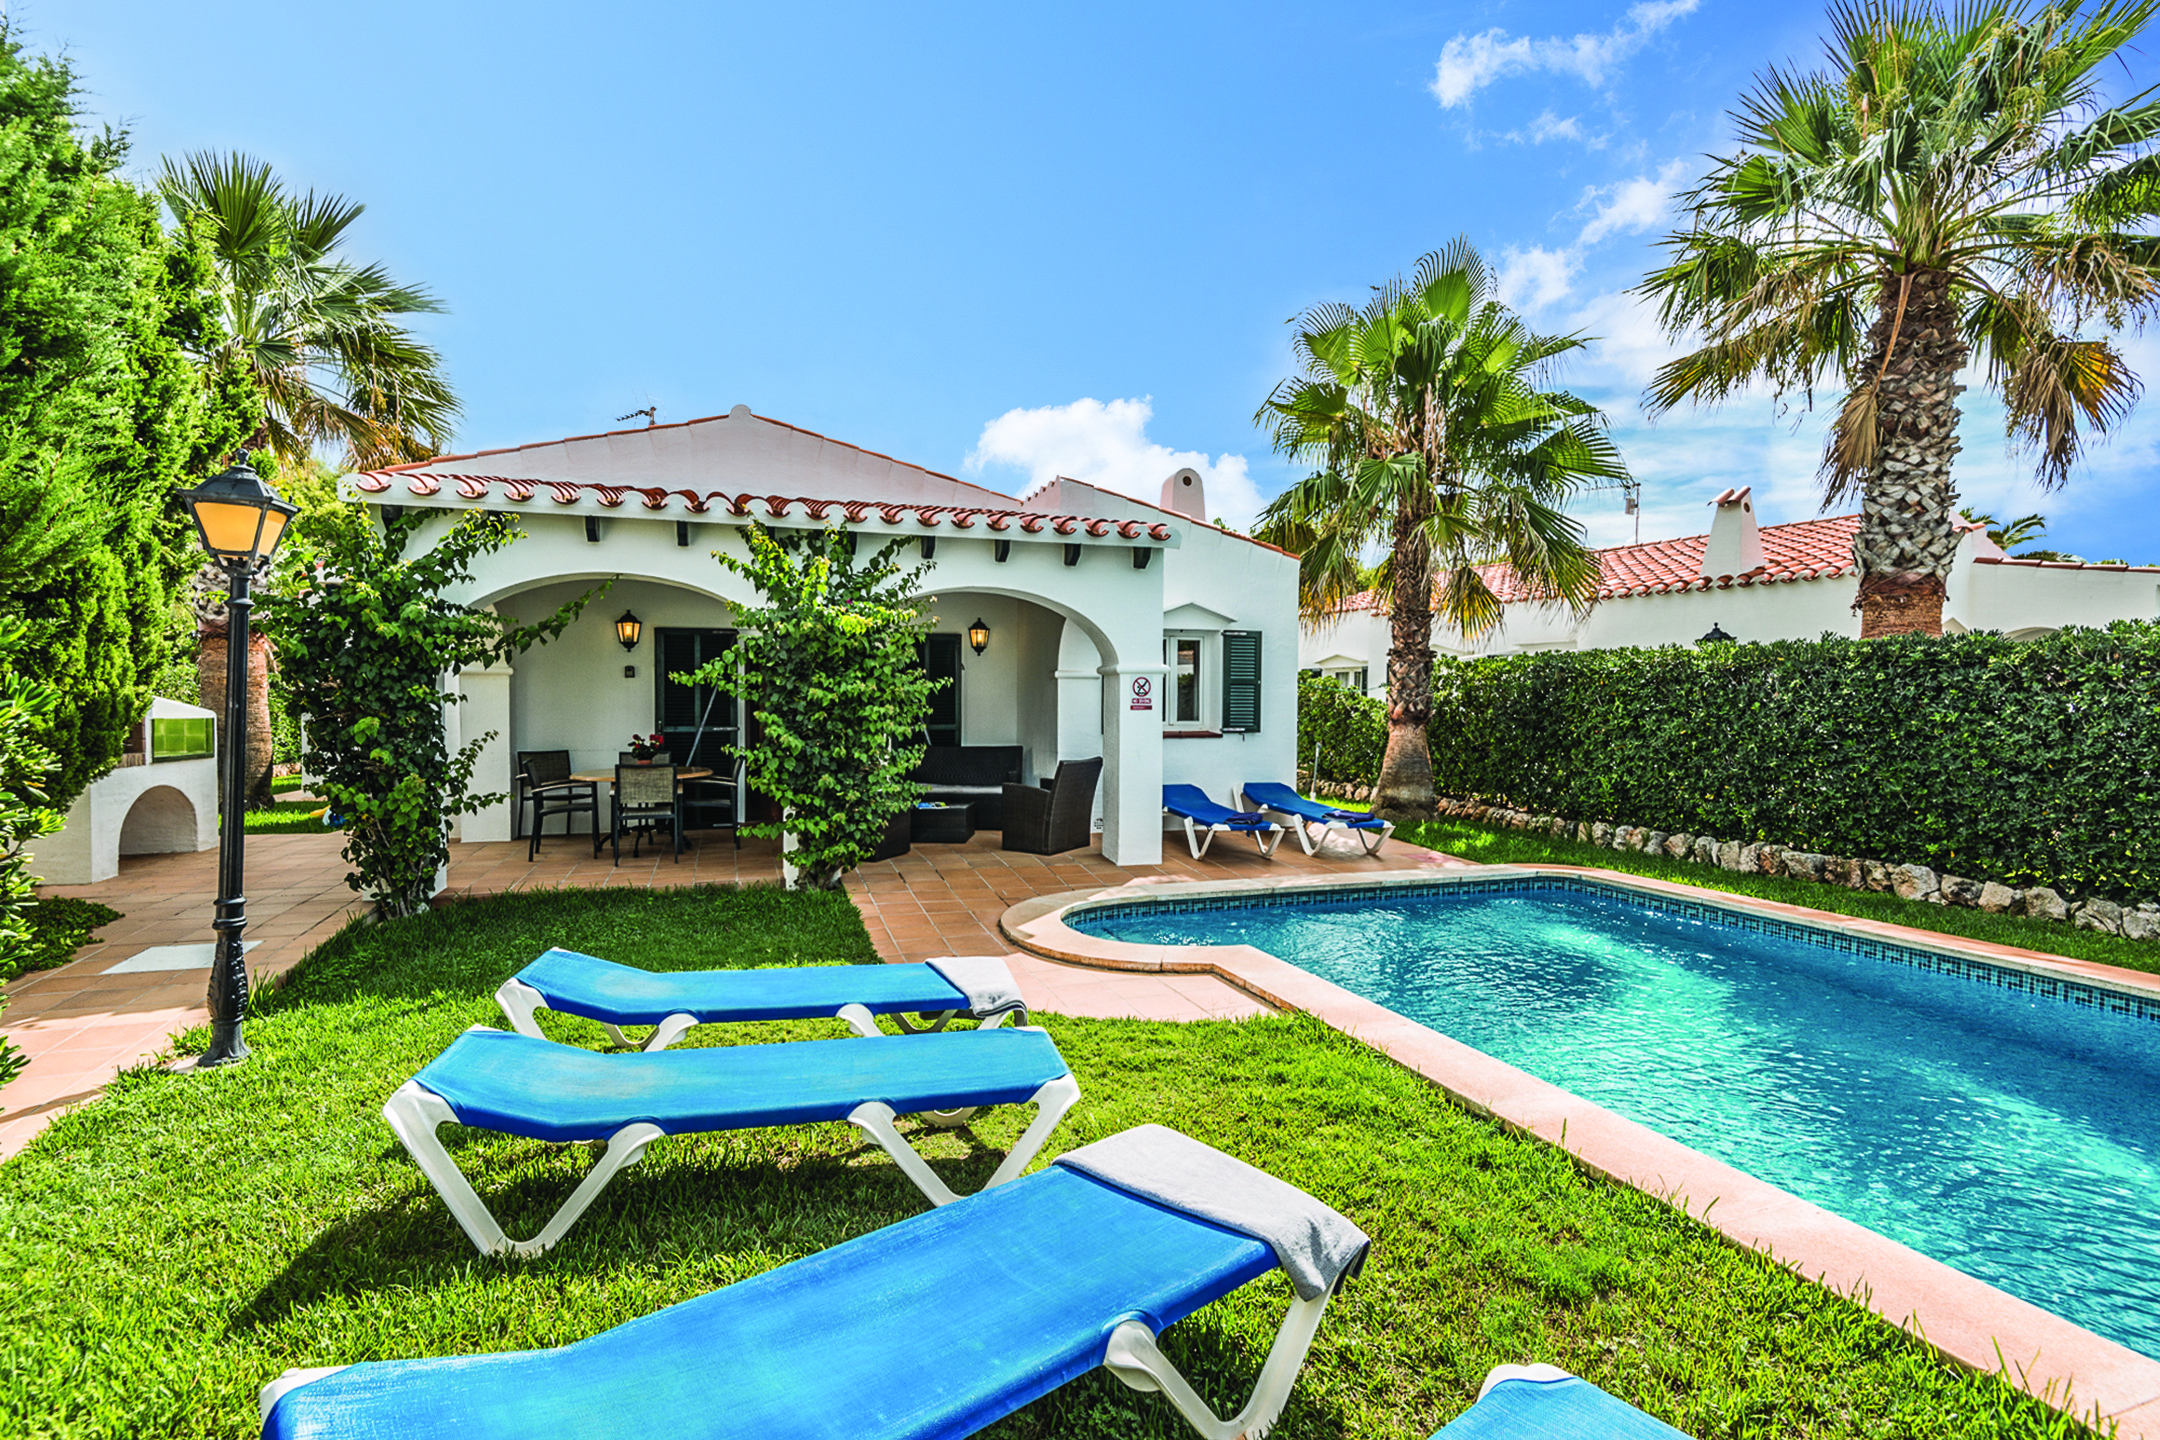 James villas holidays discount boundless by csma for Villas in uk with swimming pool